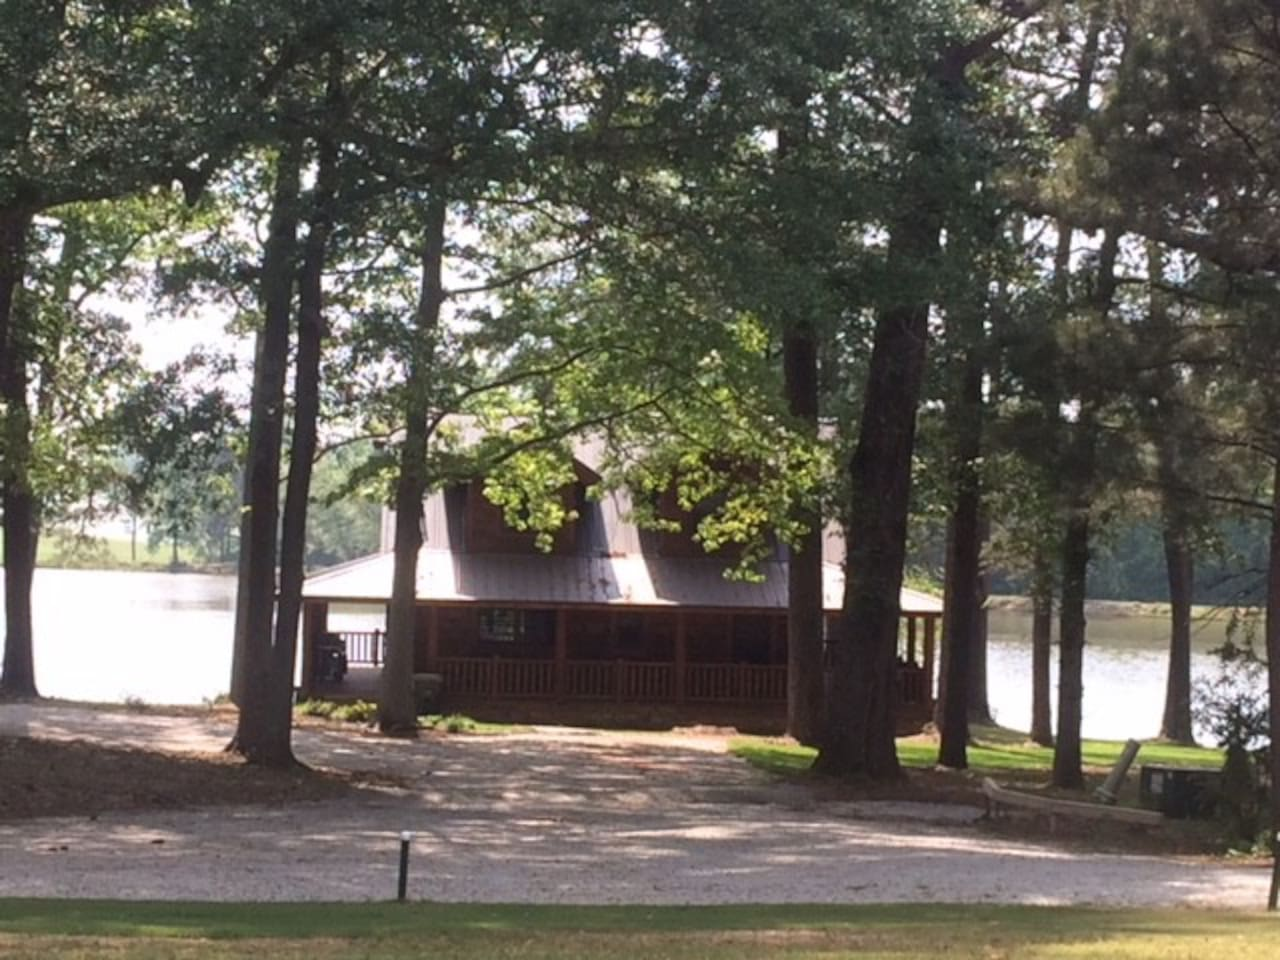 Lakeside cabin in the woods 20 mins from ATL Intl